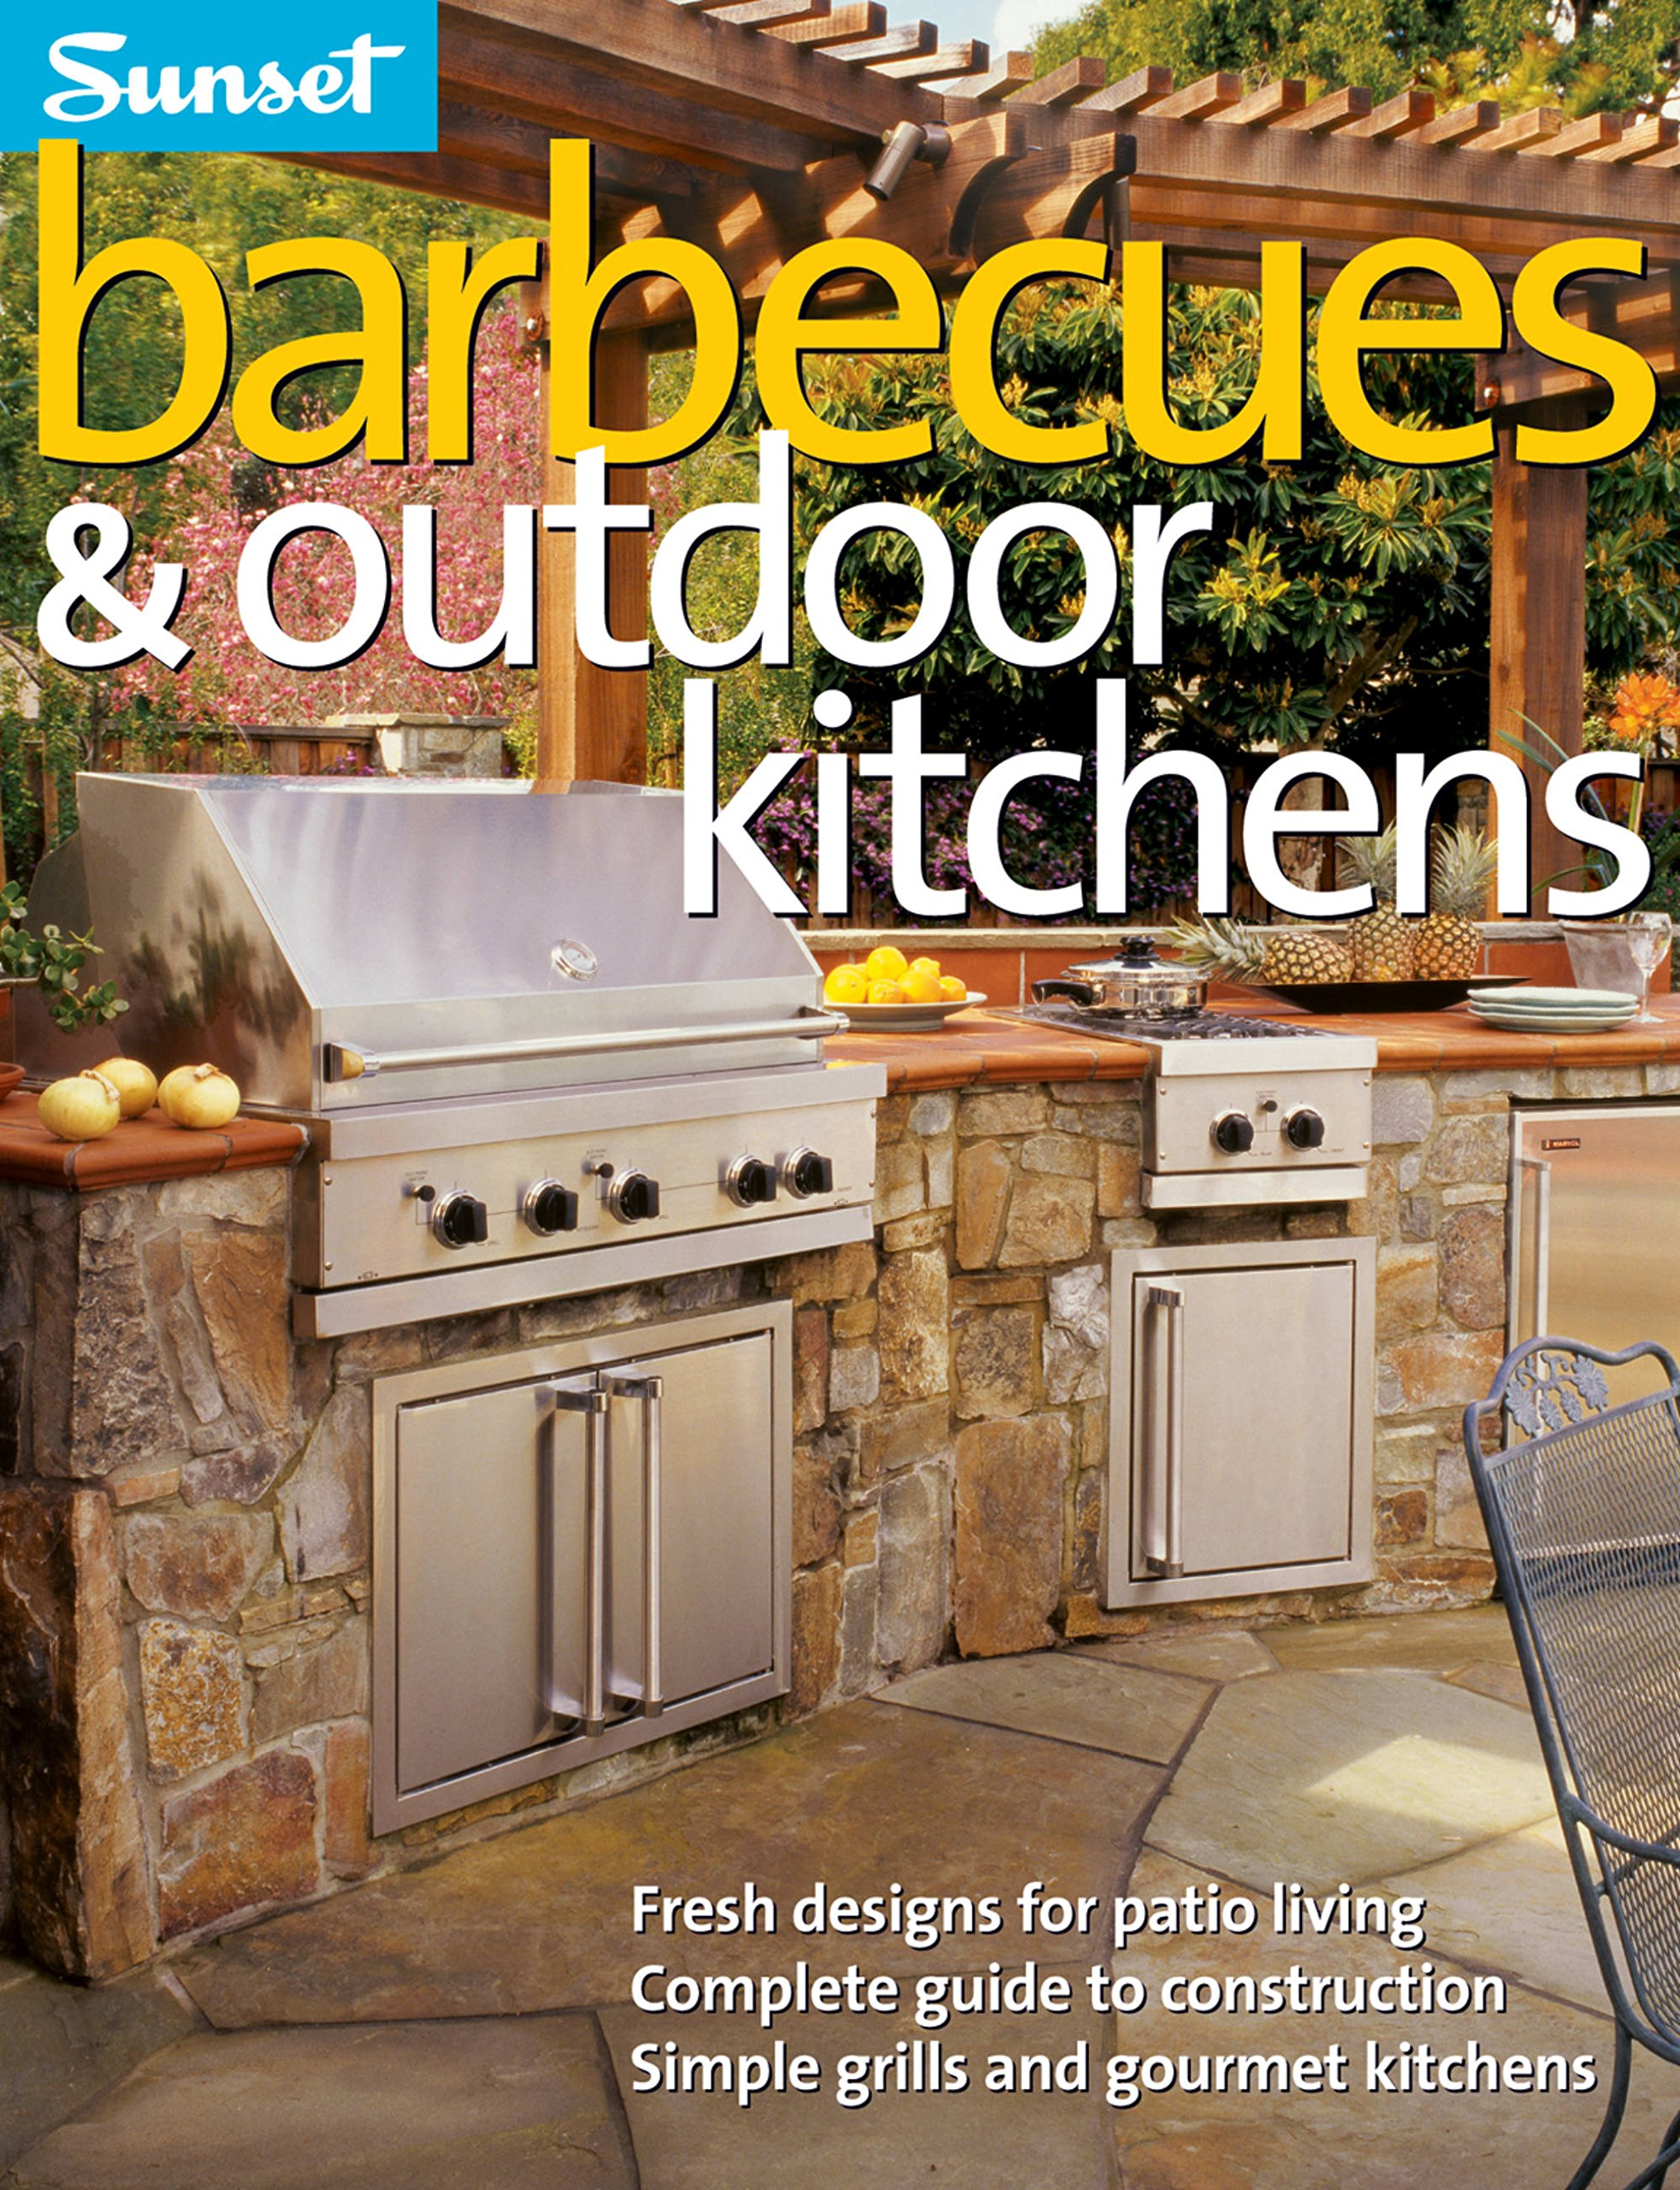 Barbecues & Outdoor Kitchens: Fresh Design for Patio Living, Complete Guide to Construction, Simple Grills and Gourmet Kitchens by Cory, Steve (EDT)/ Sunset Books (EDT)